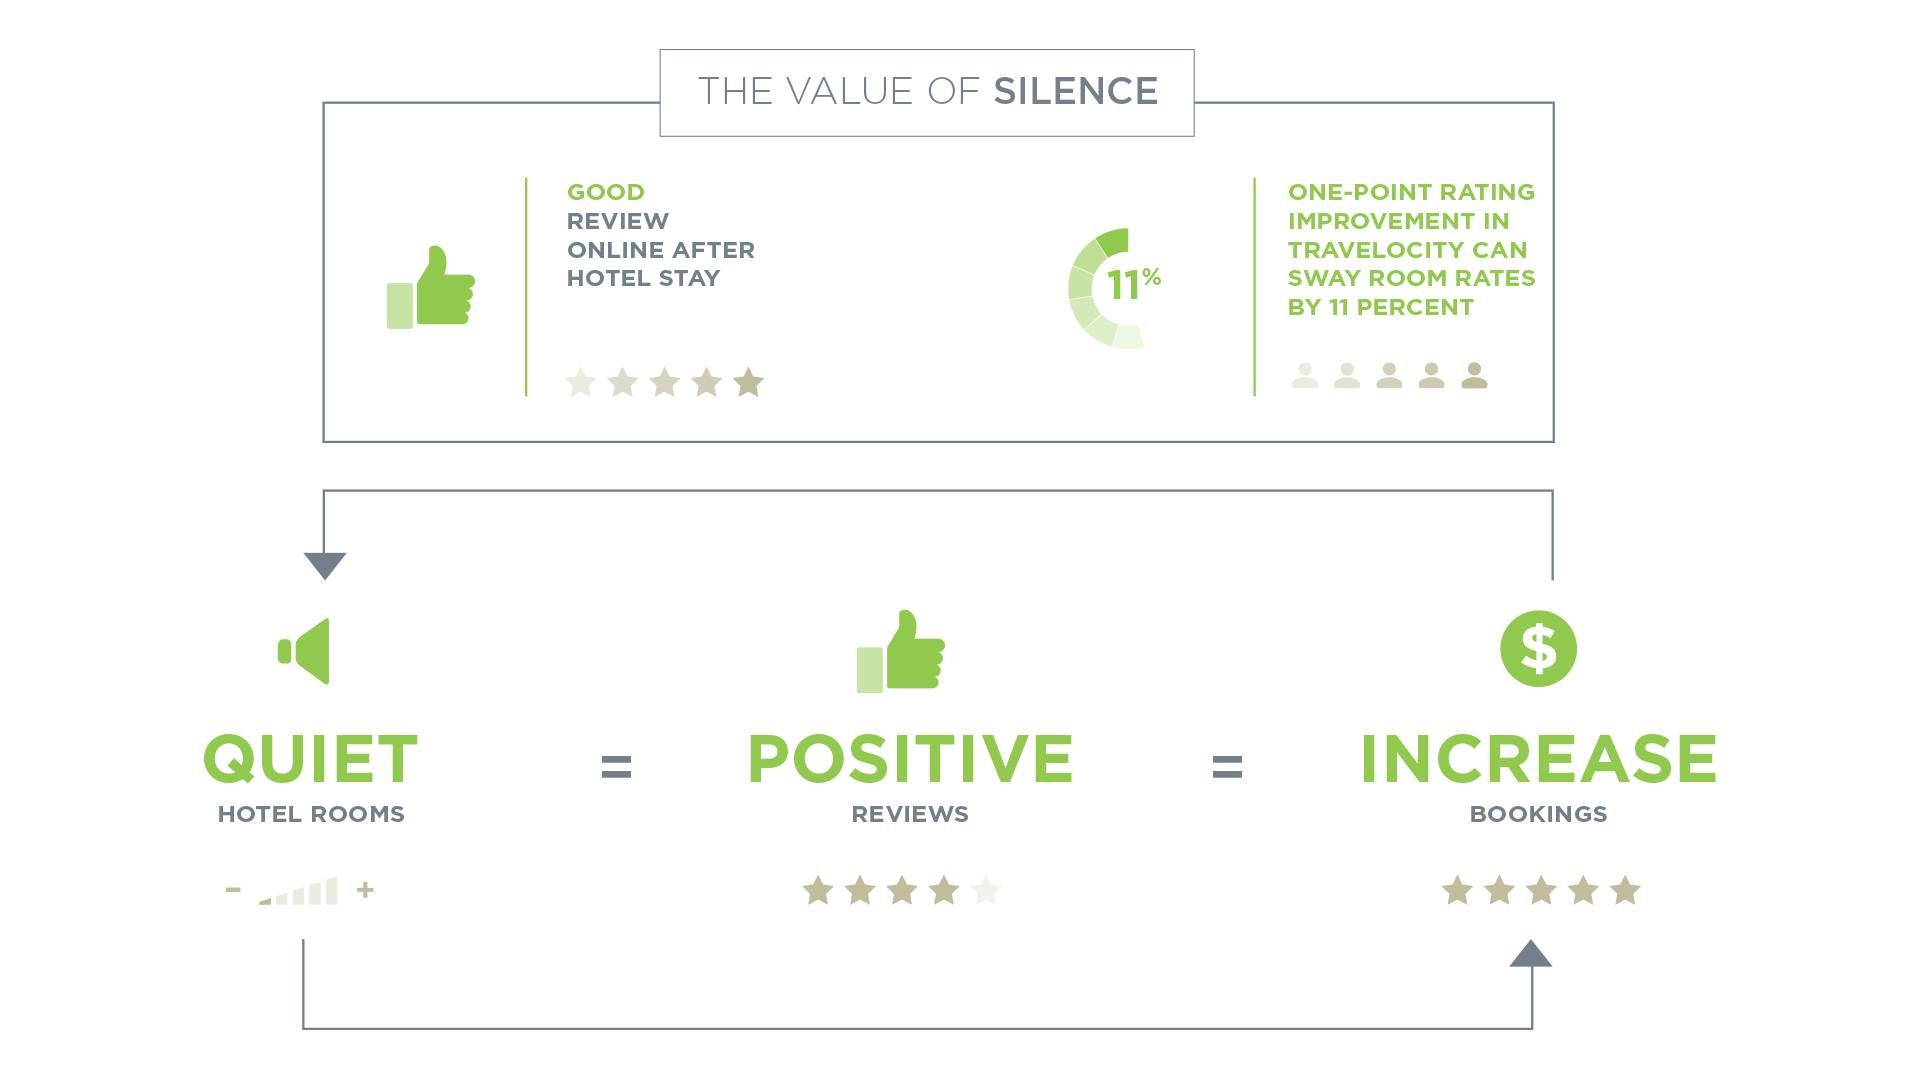 Infographic showing how good acoustics are important in hospitality environments